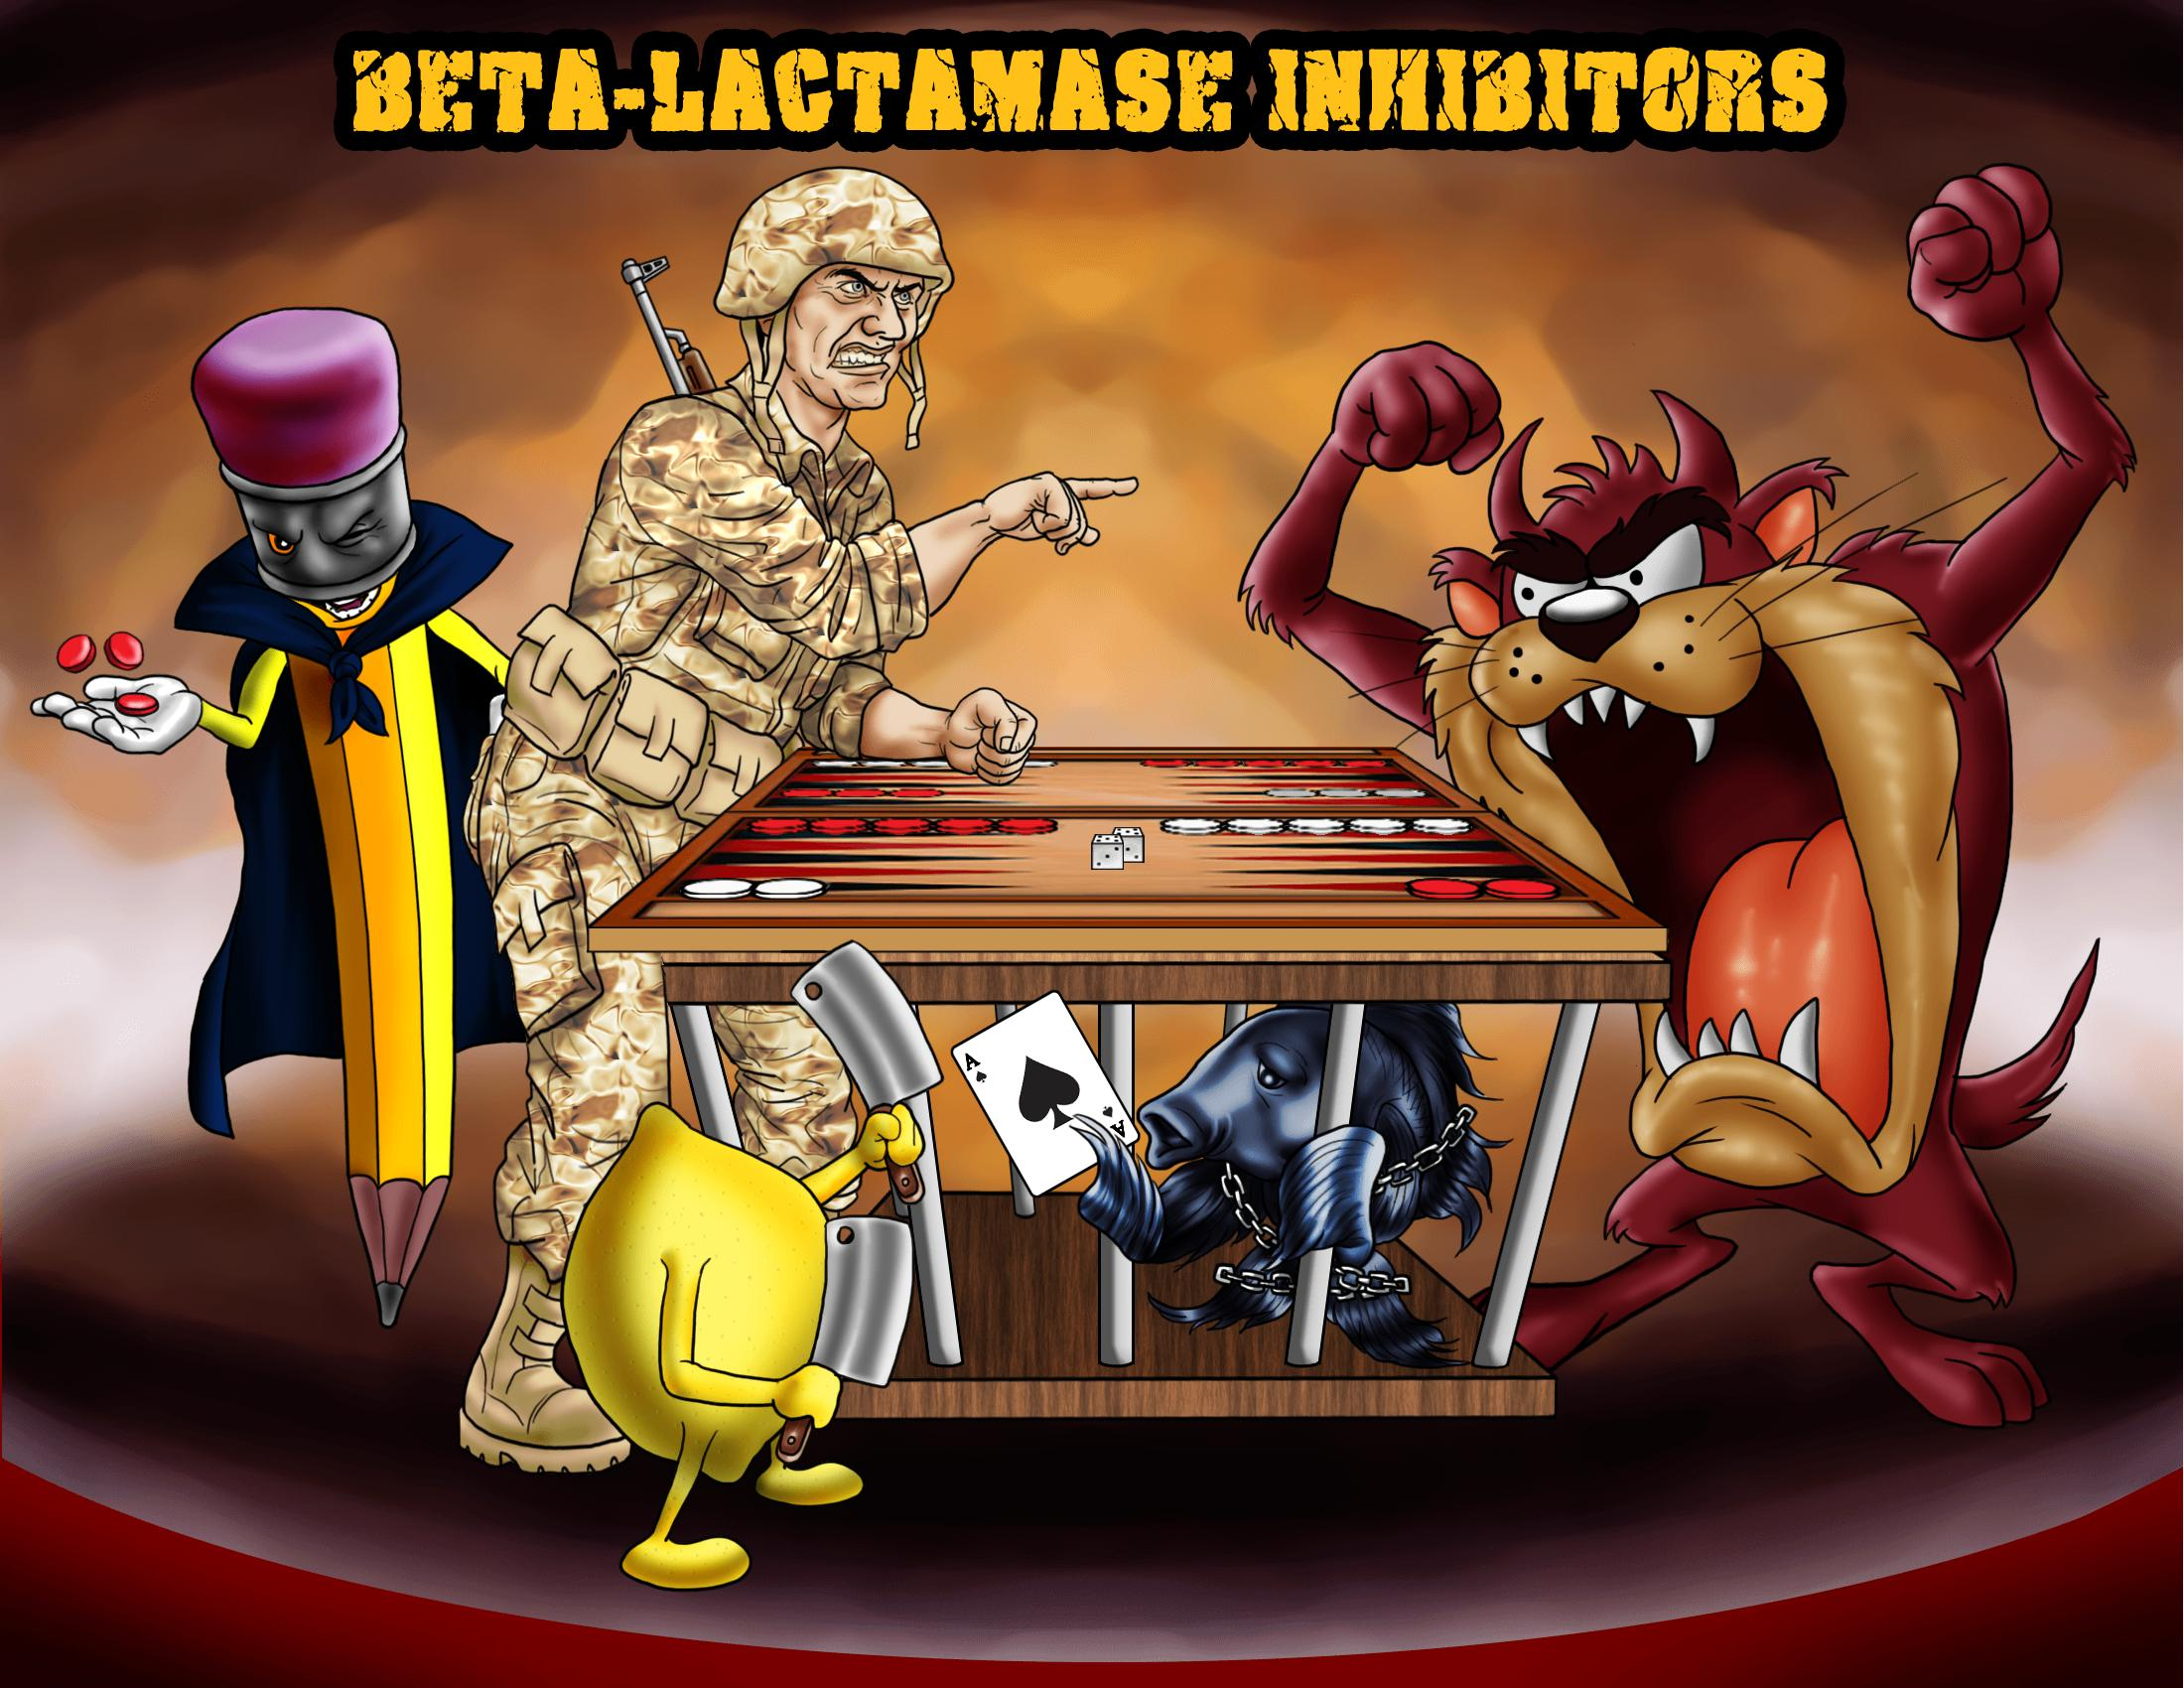 Beta-Lactamase Inhibitors